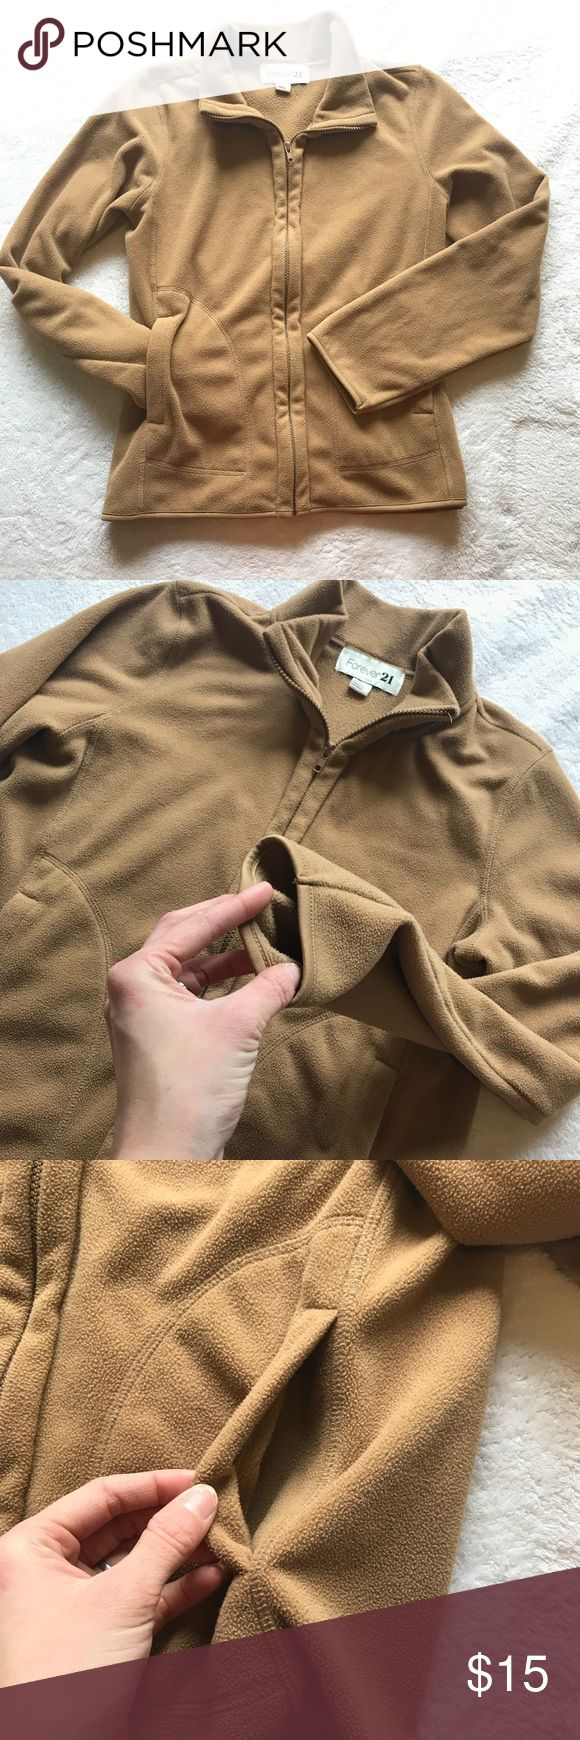 "Forever 21 Camel Zip Up Fleece Warm Pullover Superior condition - hardly worn! Pretty color. Soft fleece zip up with 2 front pockets and collar can be worn up or down. Color is as depicted. Bust - 40"" Length - 26"" Sleeves - 24"" Forever 21 Sweaters"